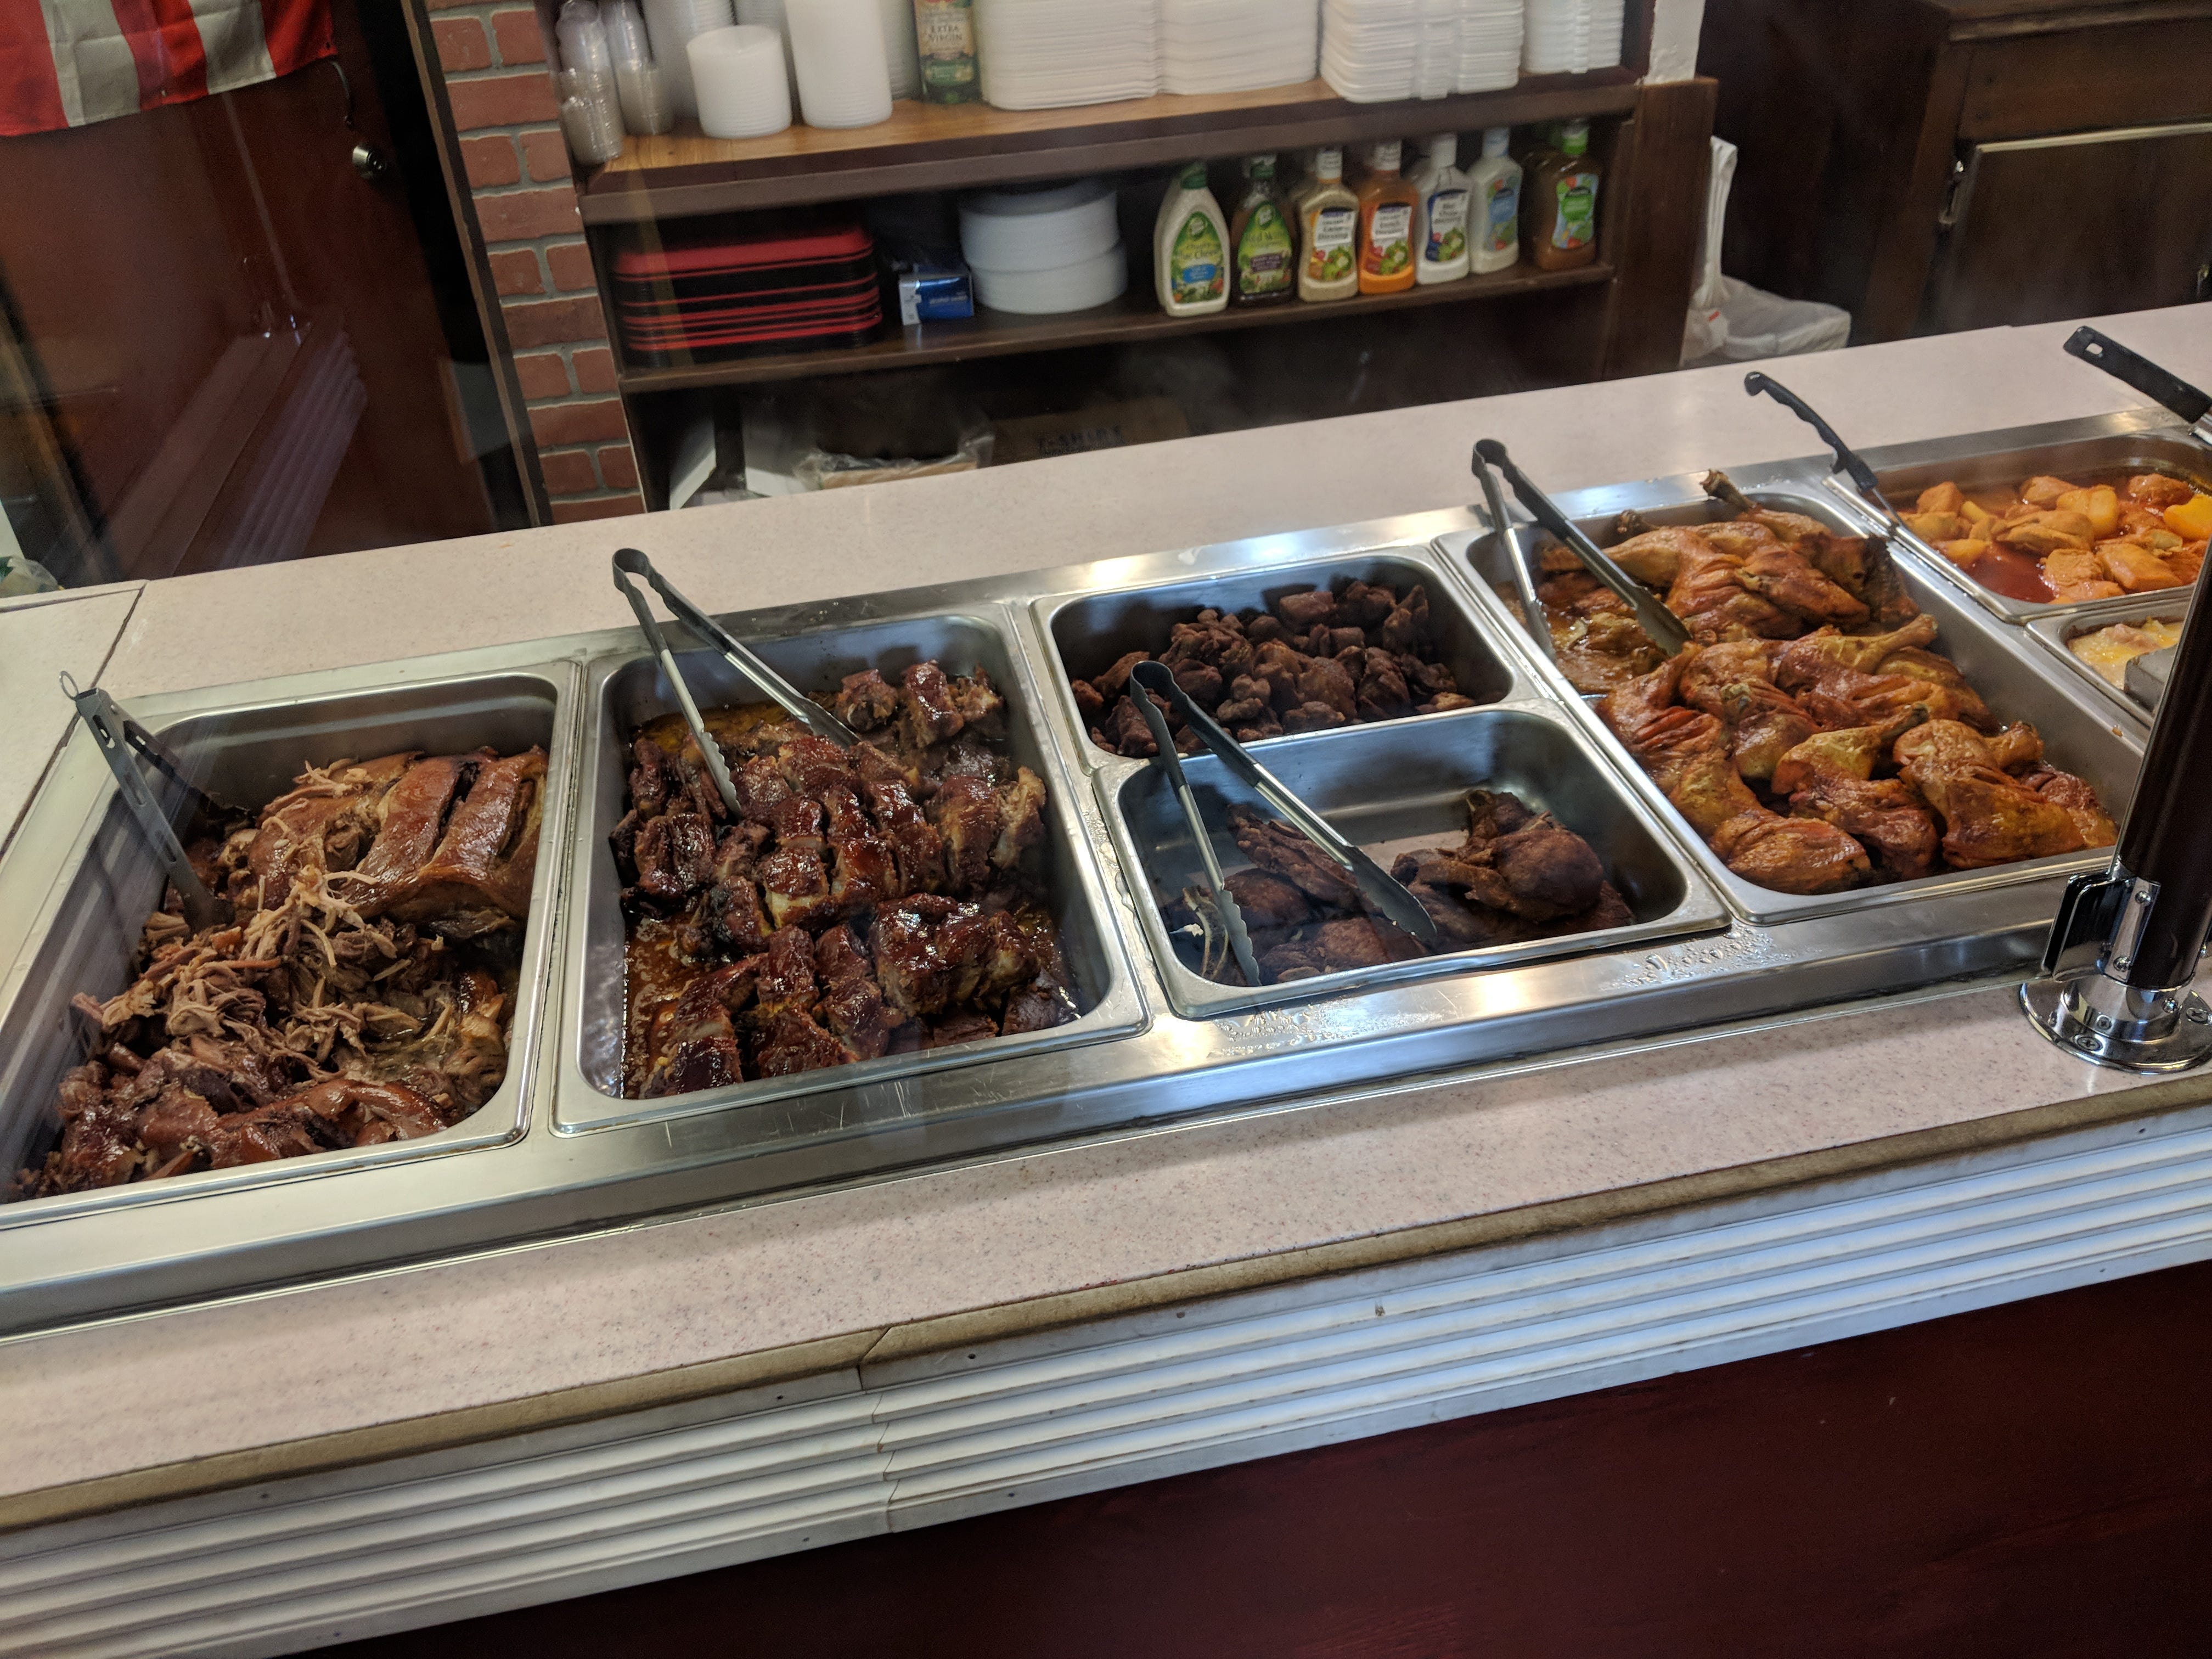 Some of the food choices at La Olla Criolla.